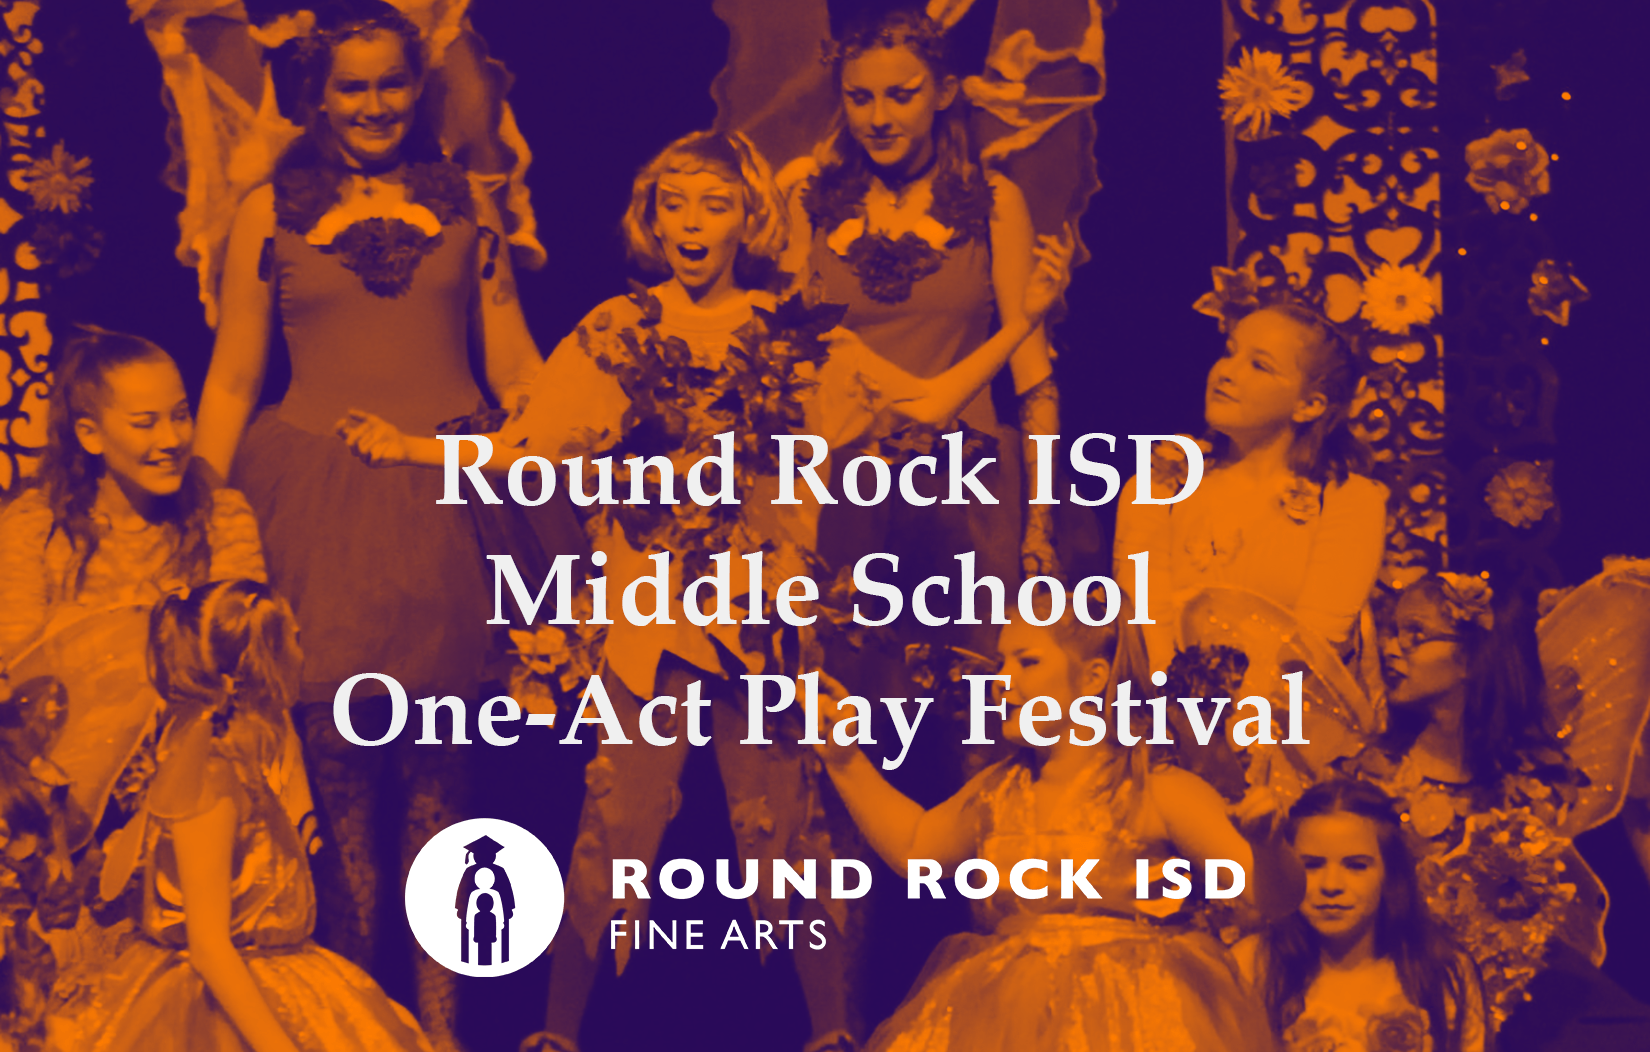 2018 Round Rock ISD Middle School One-Act Play Festival